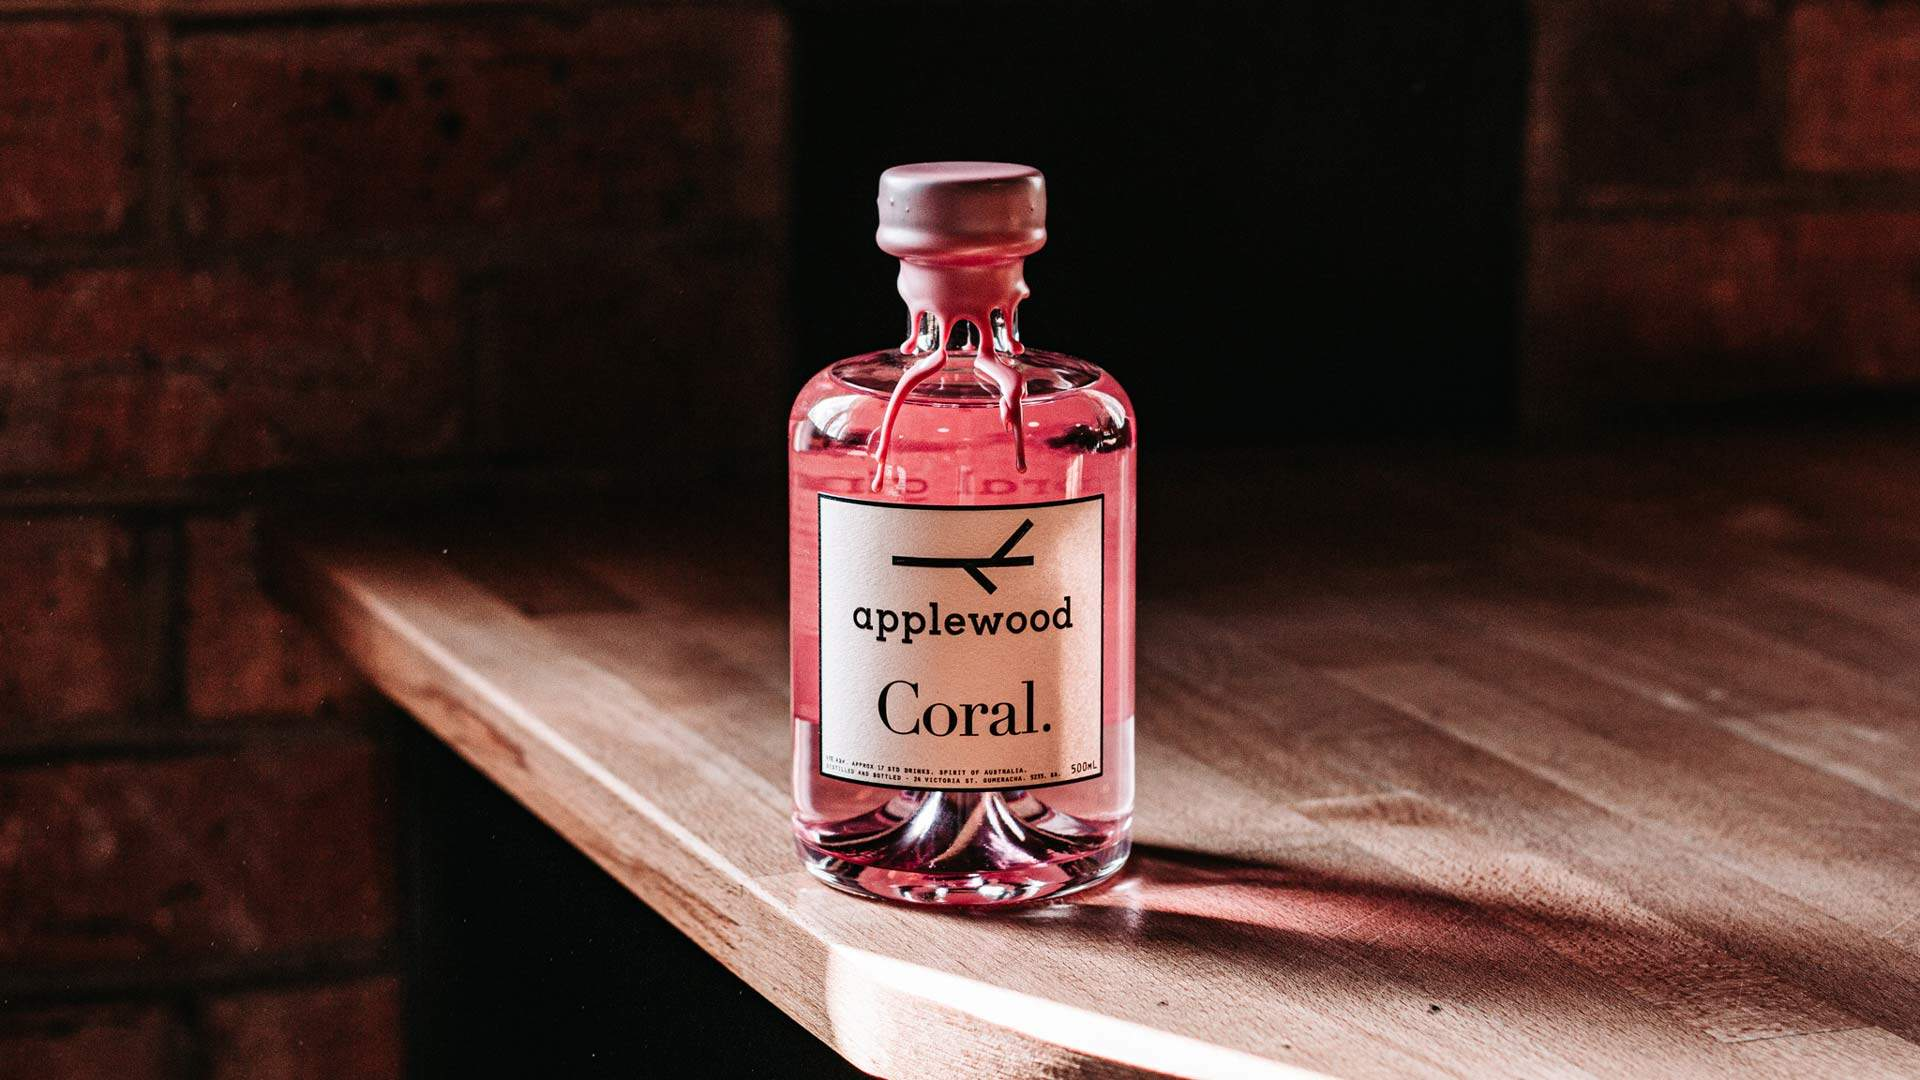 Applewood Distillery Has Just Released A New Coral Pink Gin Made With Native Australian Botanicals photo